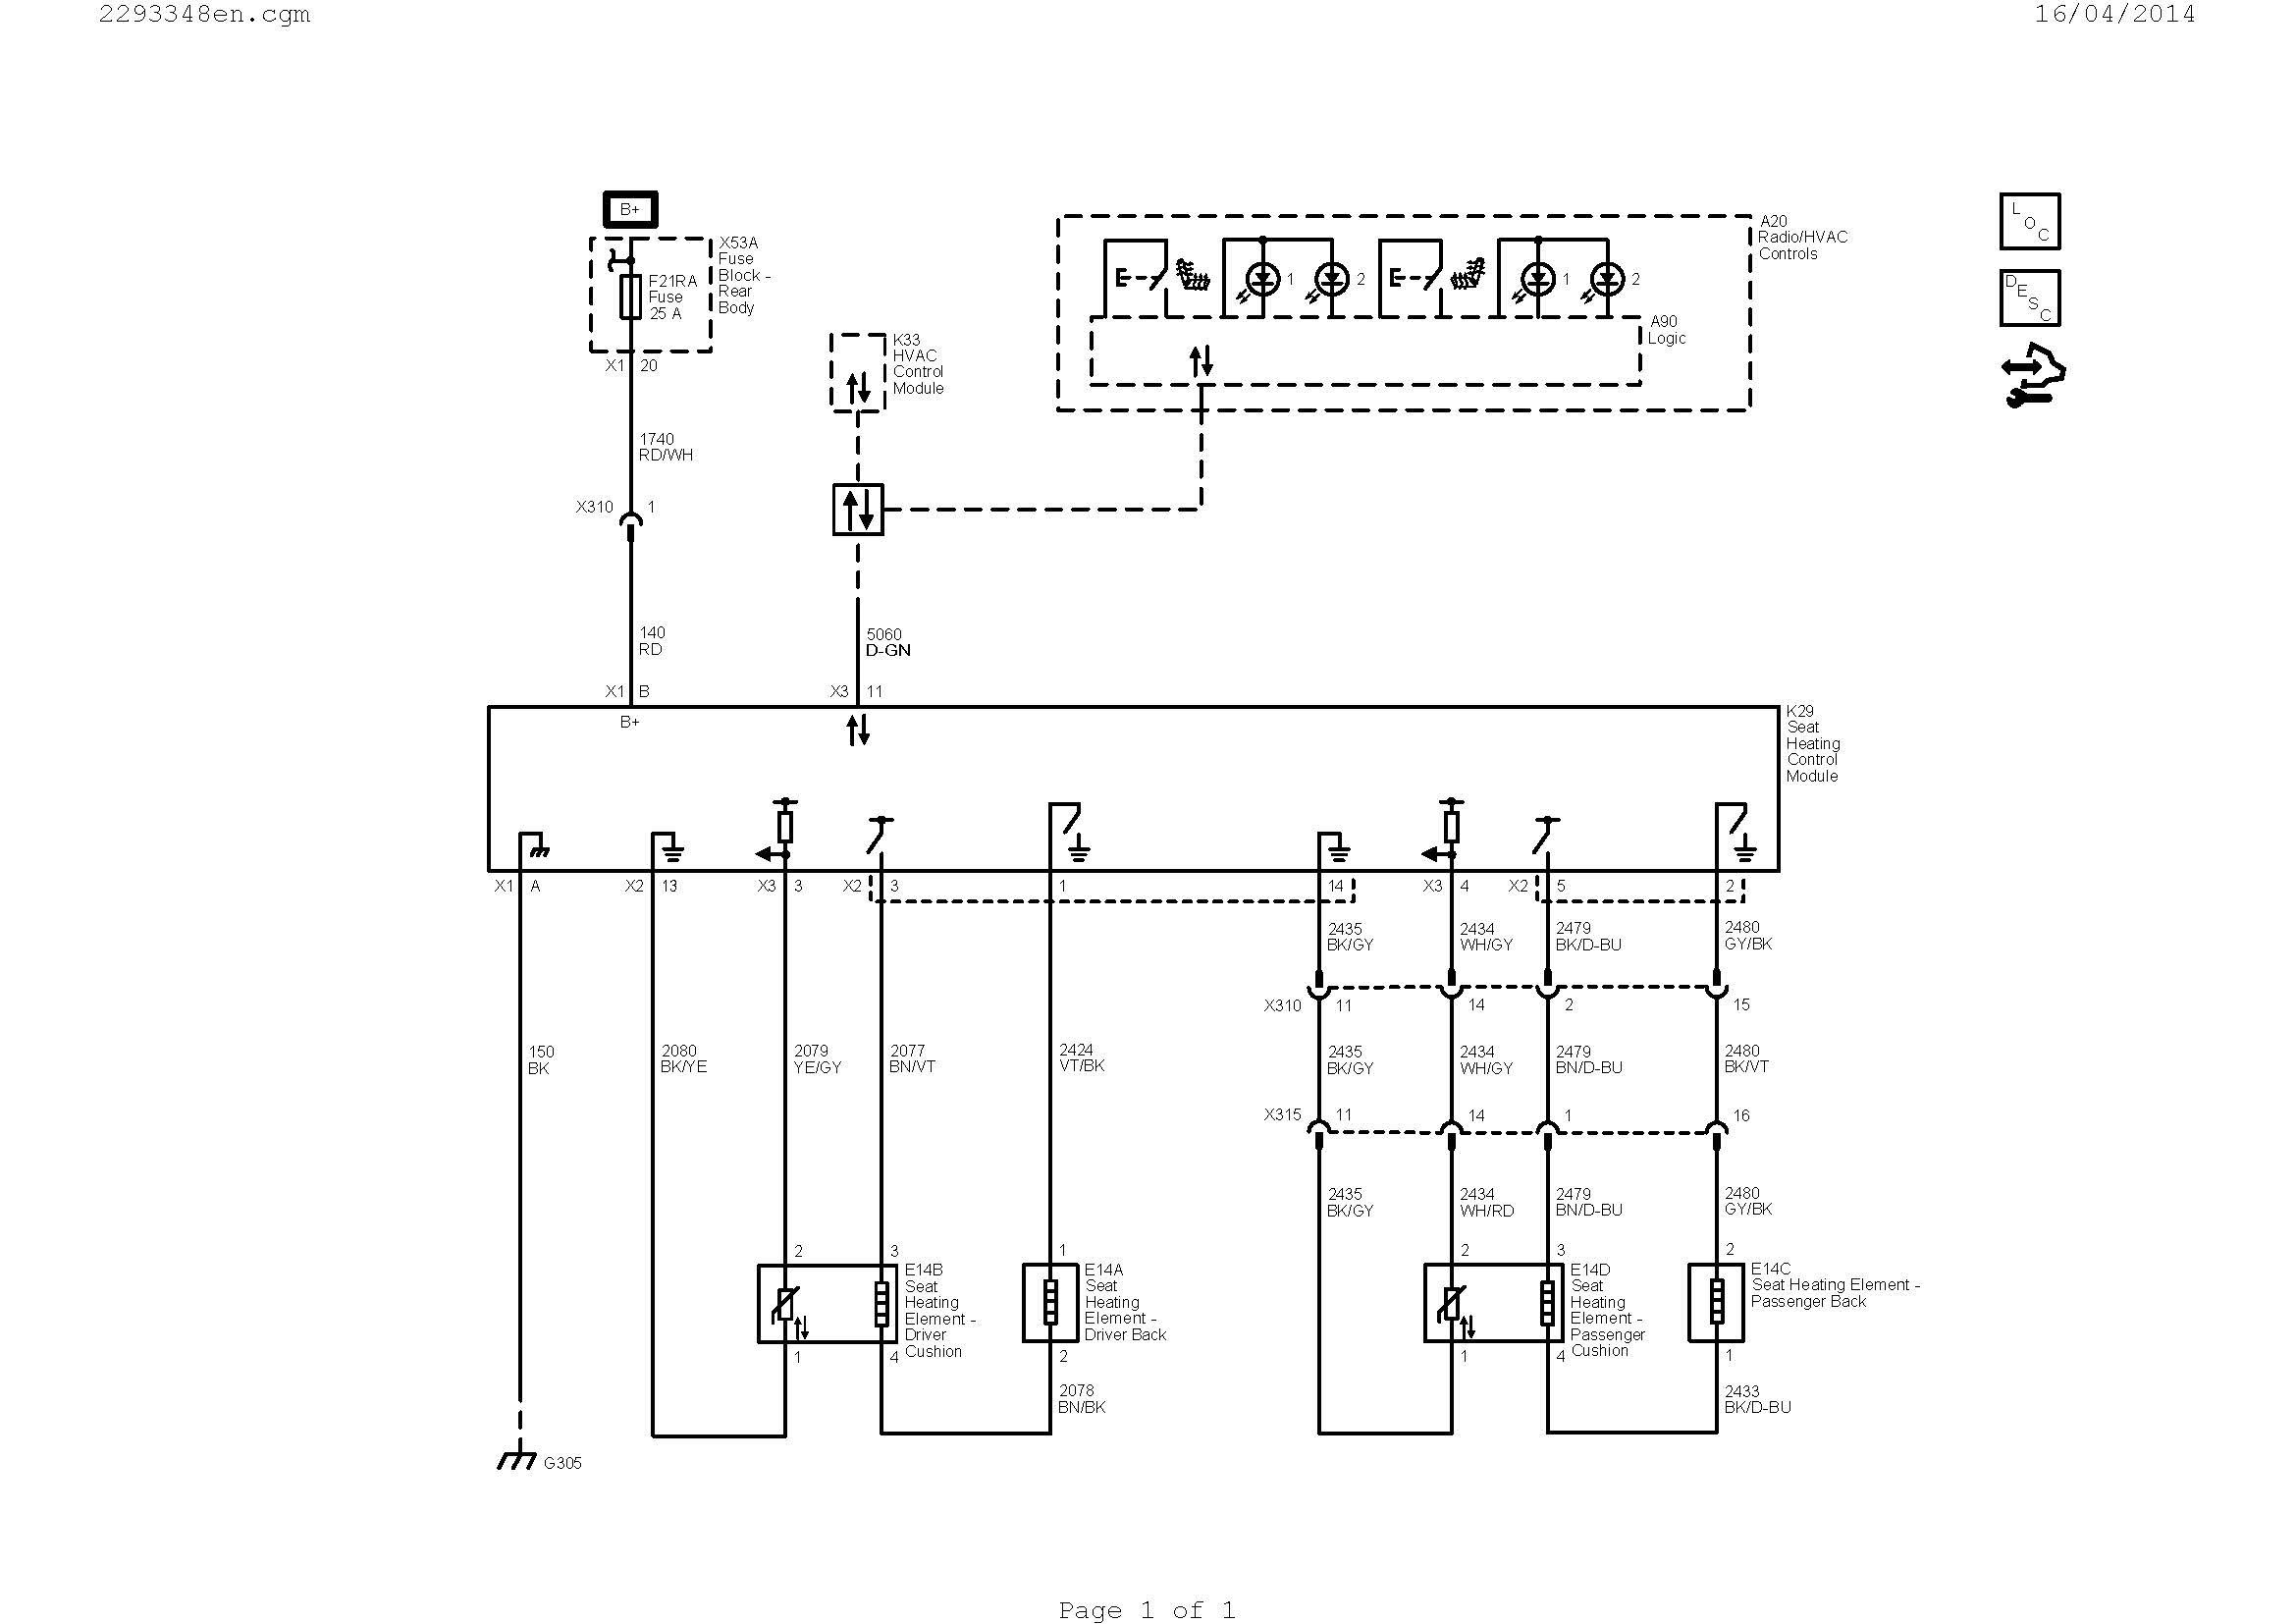 electric floor heating wiring diagram Download-electric heater wiring diagram Collection Wiring Diagrams For Central Heating Refrence Hvac Diagram Best Hvac DOWNLOAD Wiring Diagram 13-s